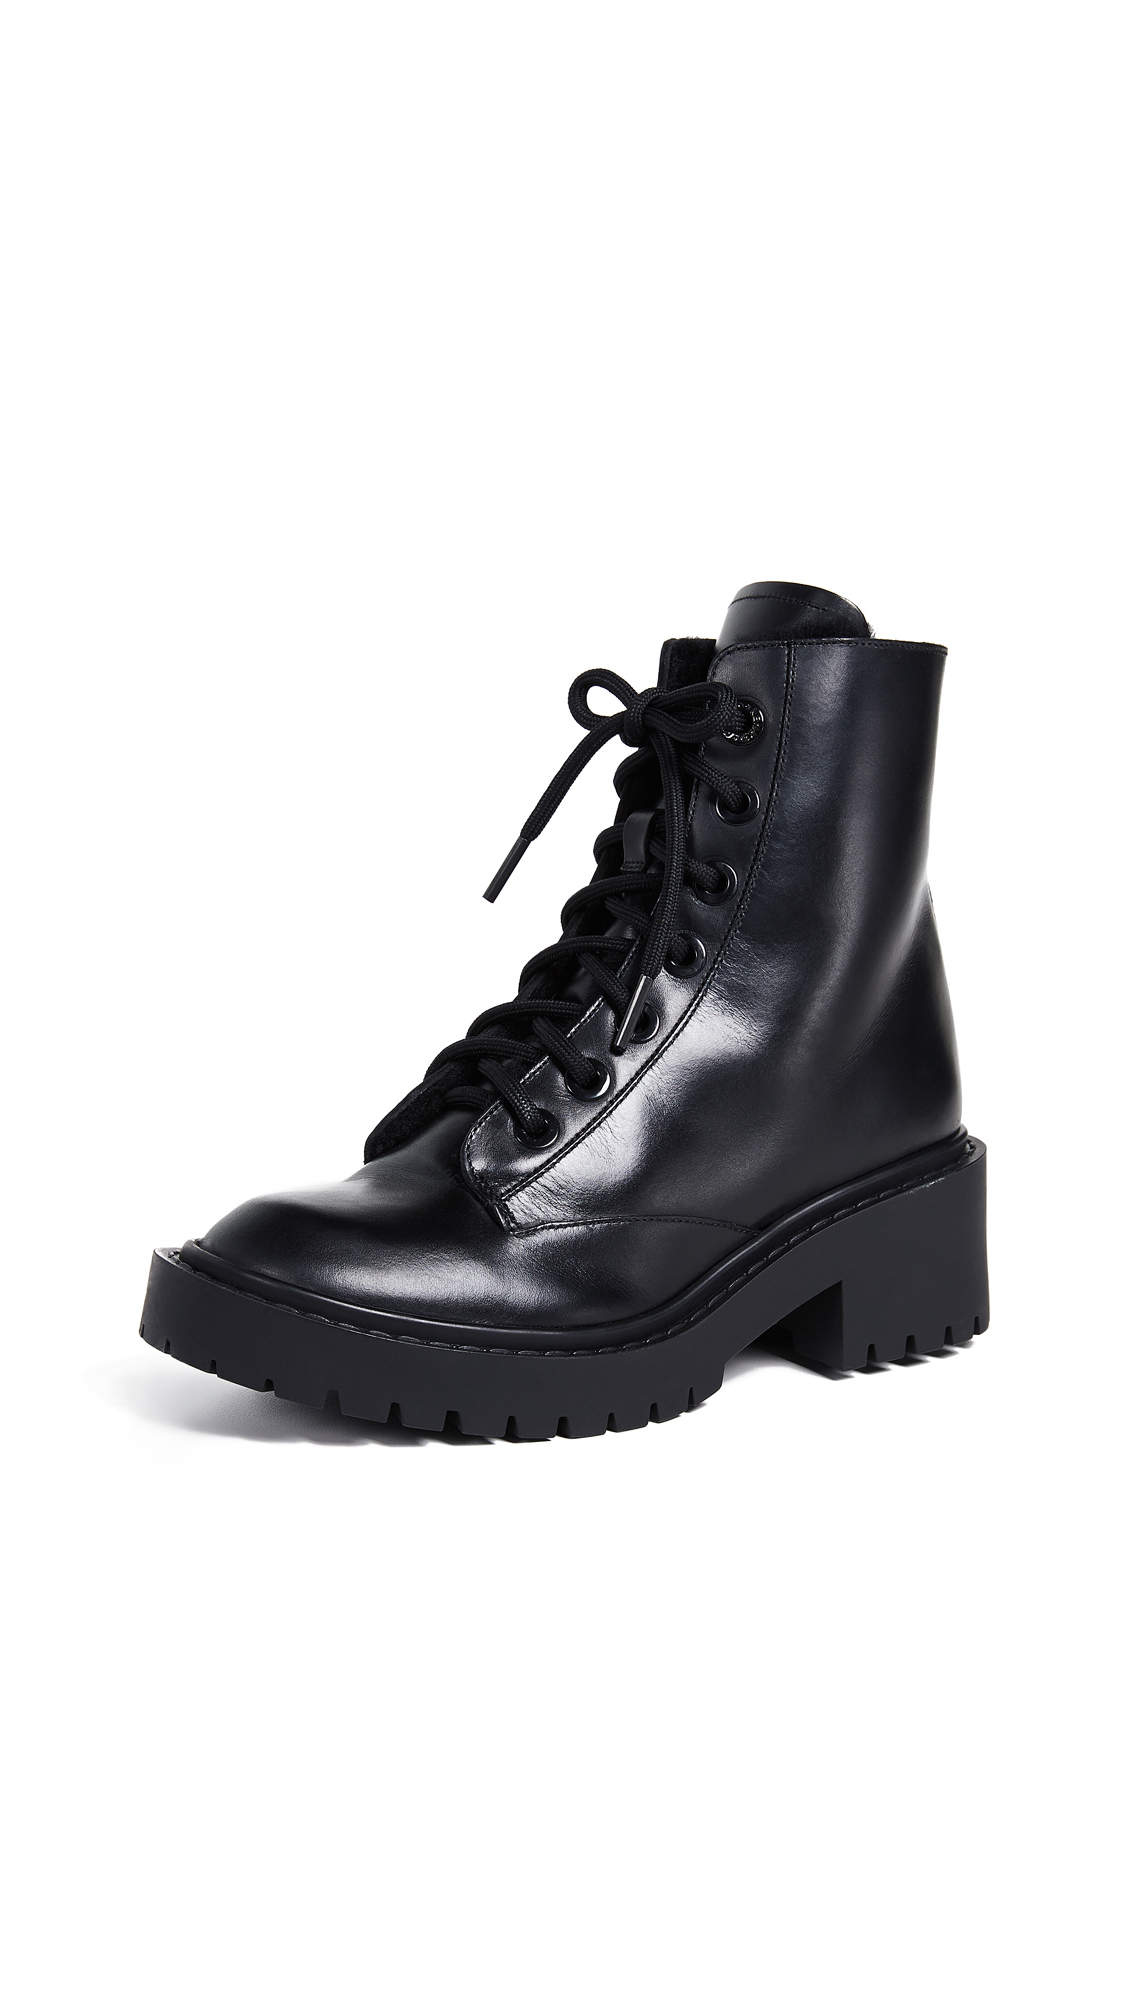 KENZO Pike Shearling Lined Boots - Black